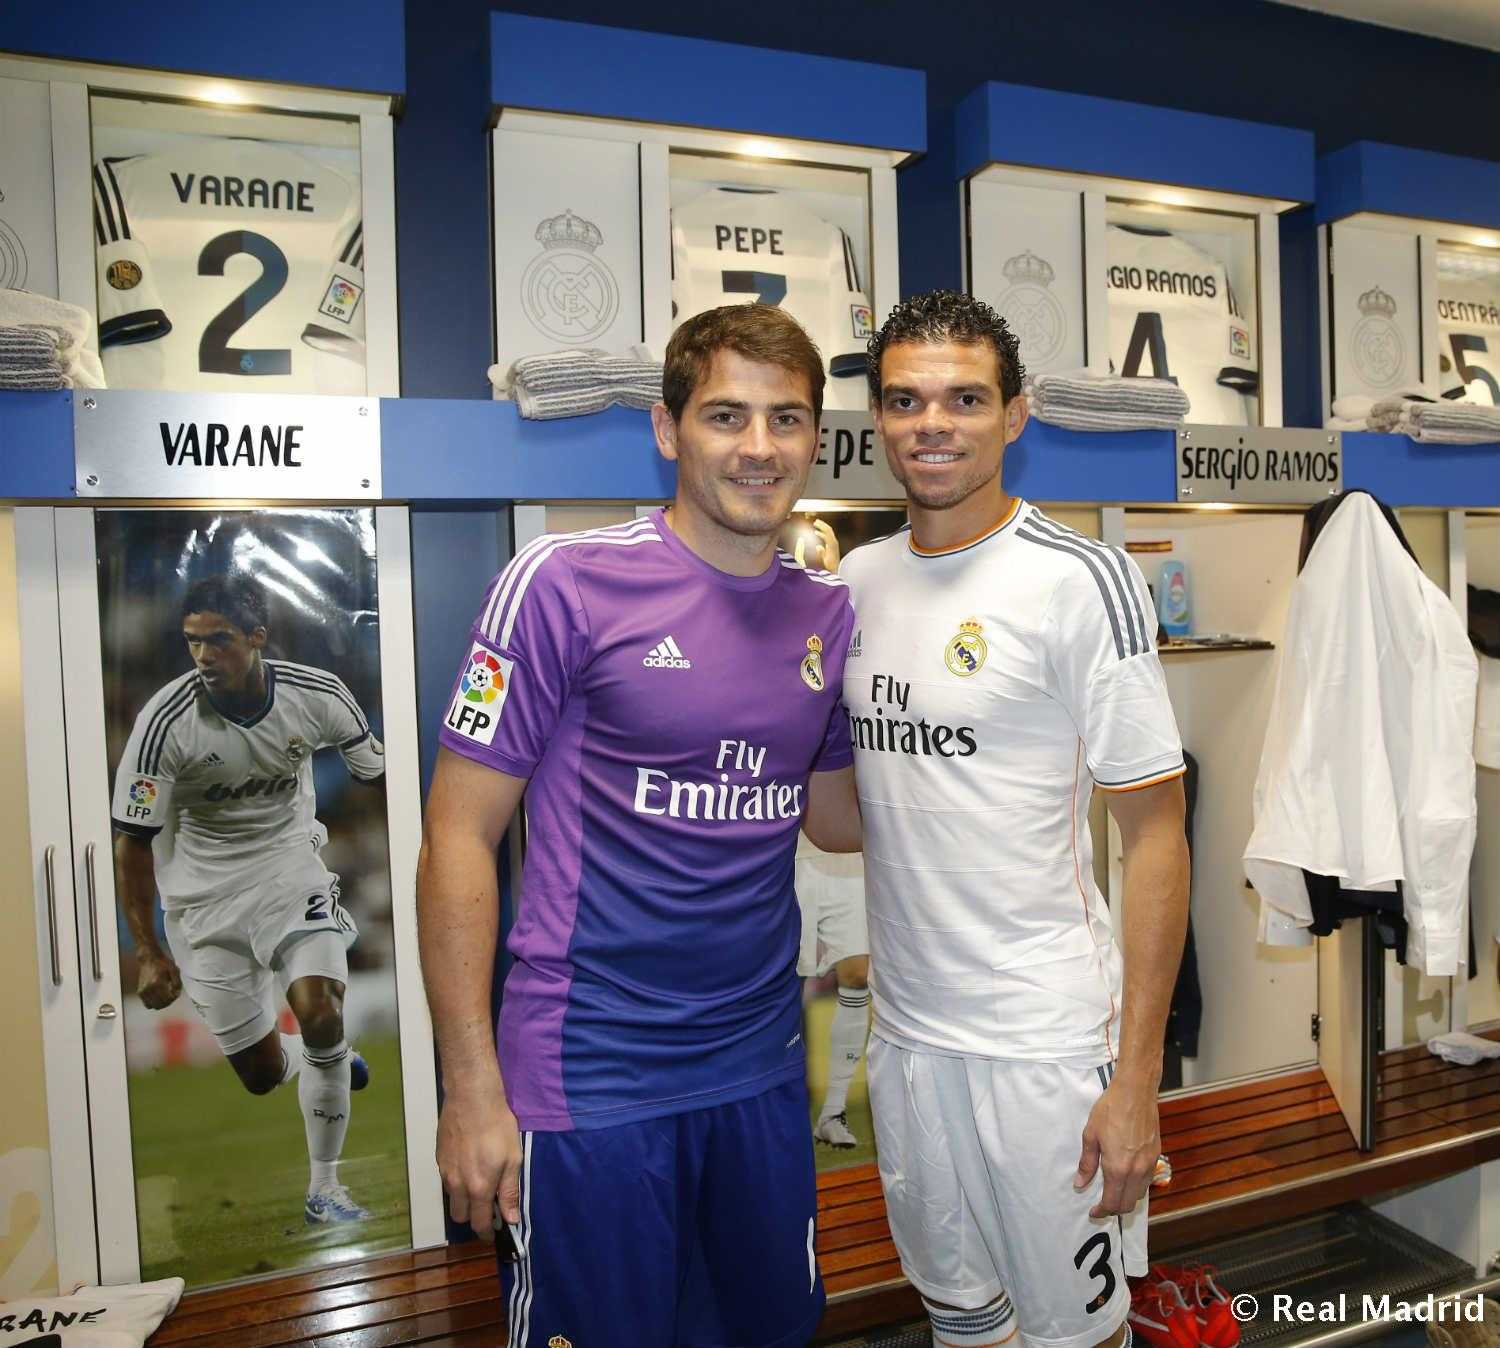 Real Madrid - Pepe e Iker Casillas - 27-01-2014